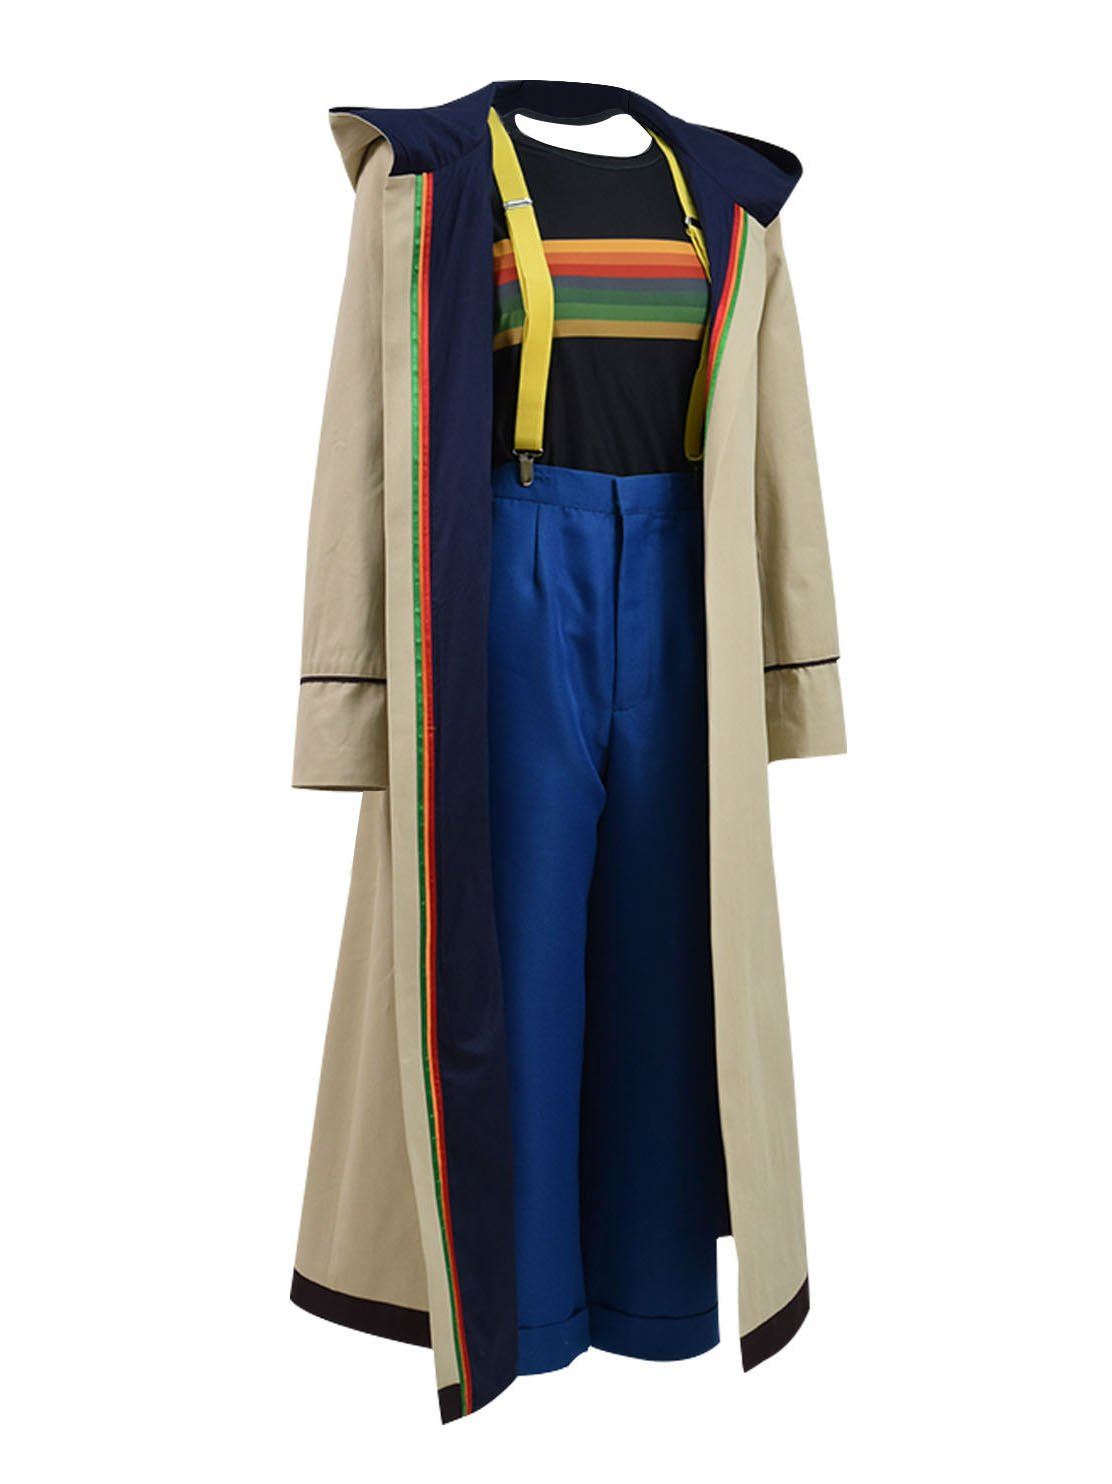 Very Last Shop Classic Sci-Fi TV Series 13th Doctor Costume Women Beige Trench Coat Overcoat (Beige Full Set, US Women-XXL) by Very Last Shop (Image #2)